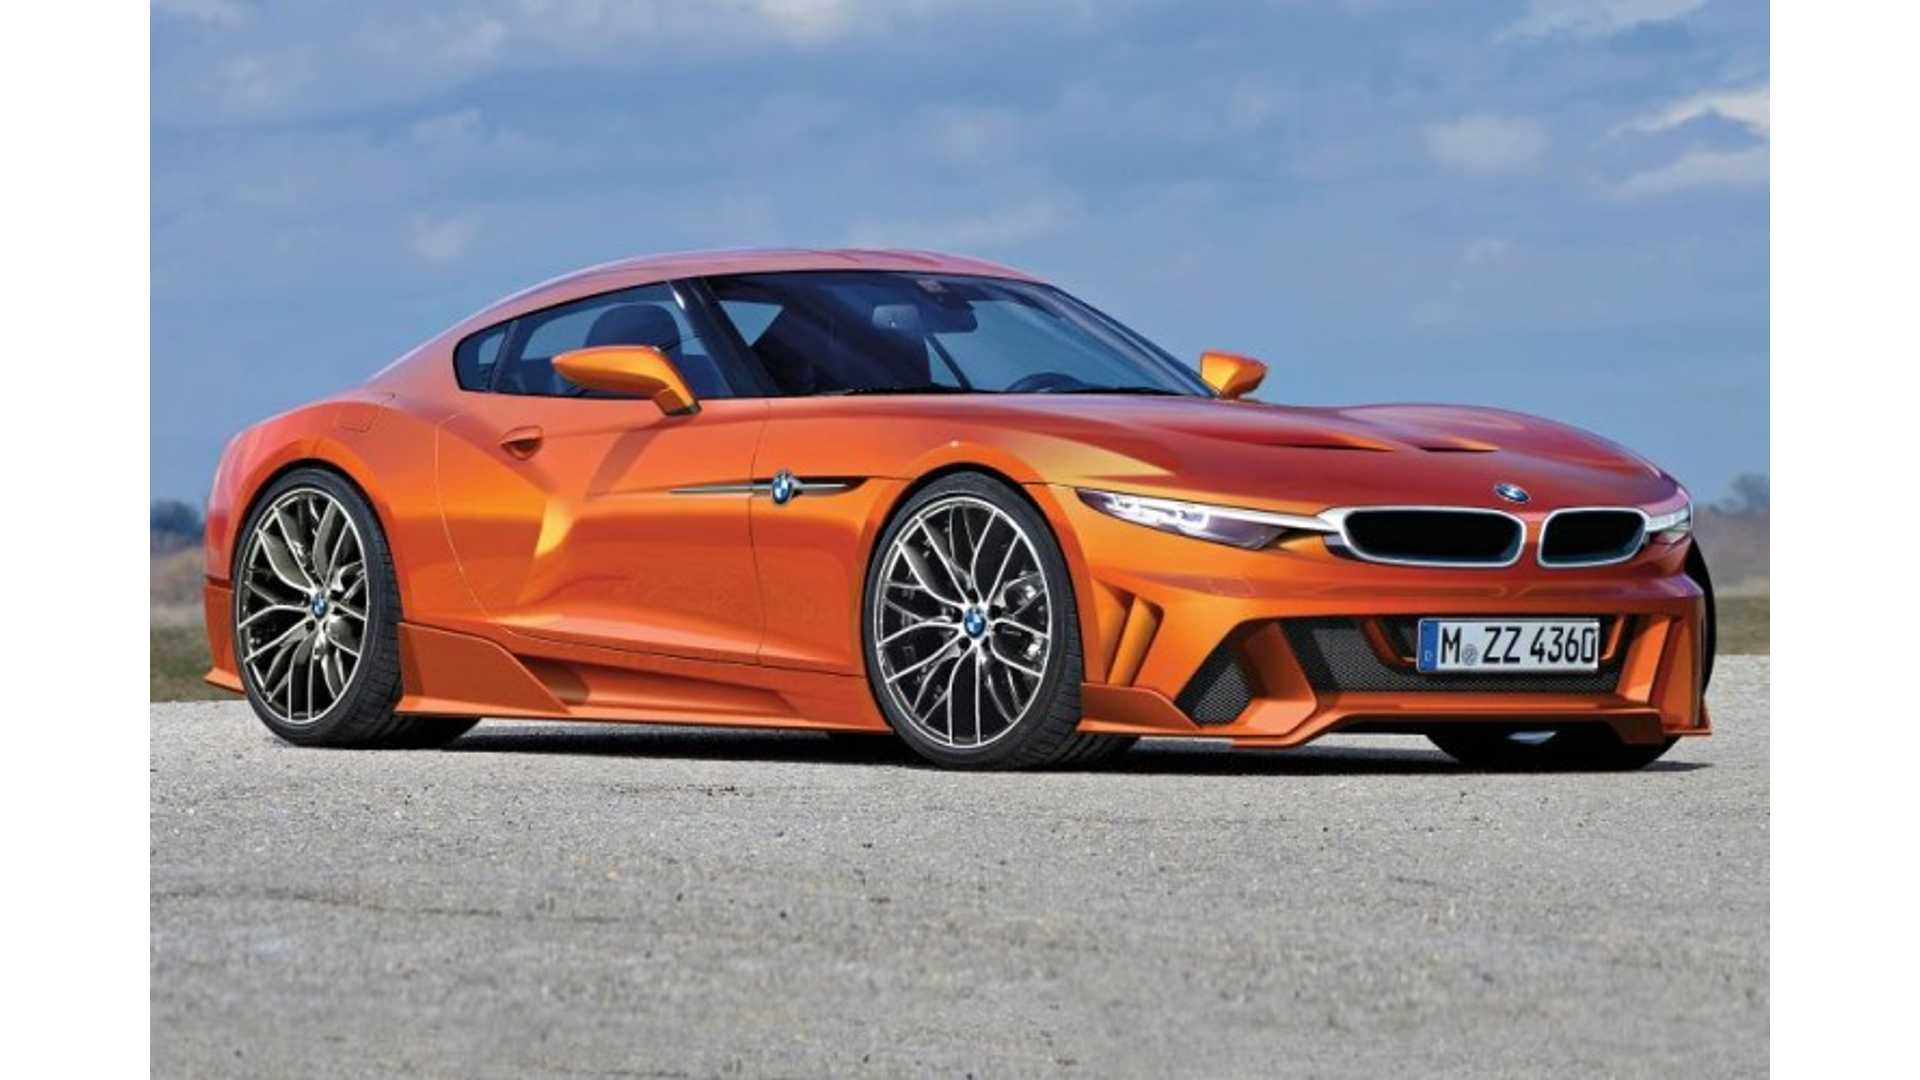 BMW Toyota Sports Car to Feature Supercapacitors, 2 Electric Motors